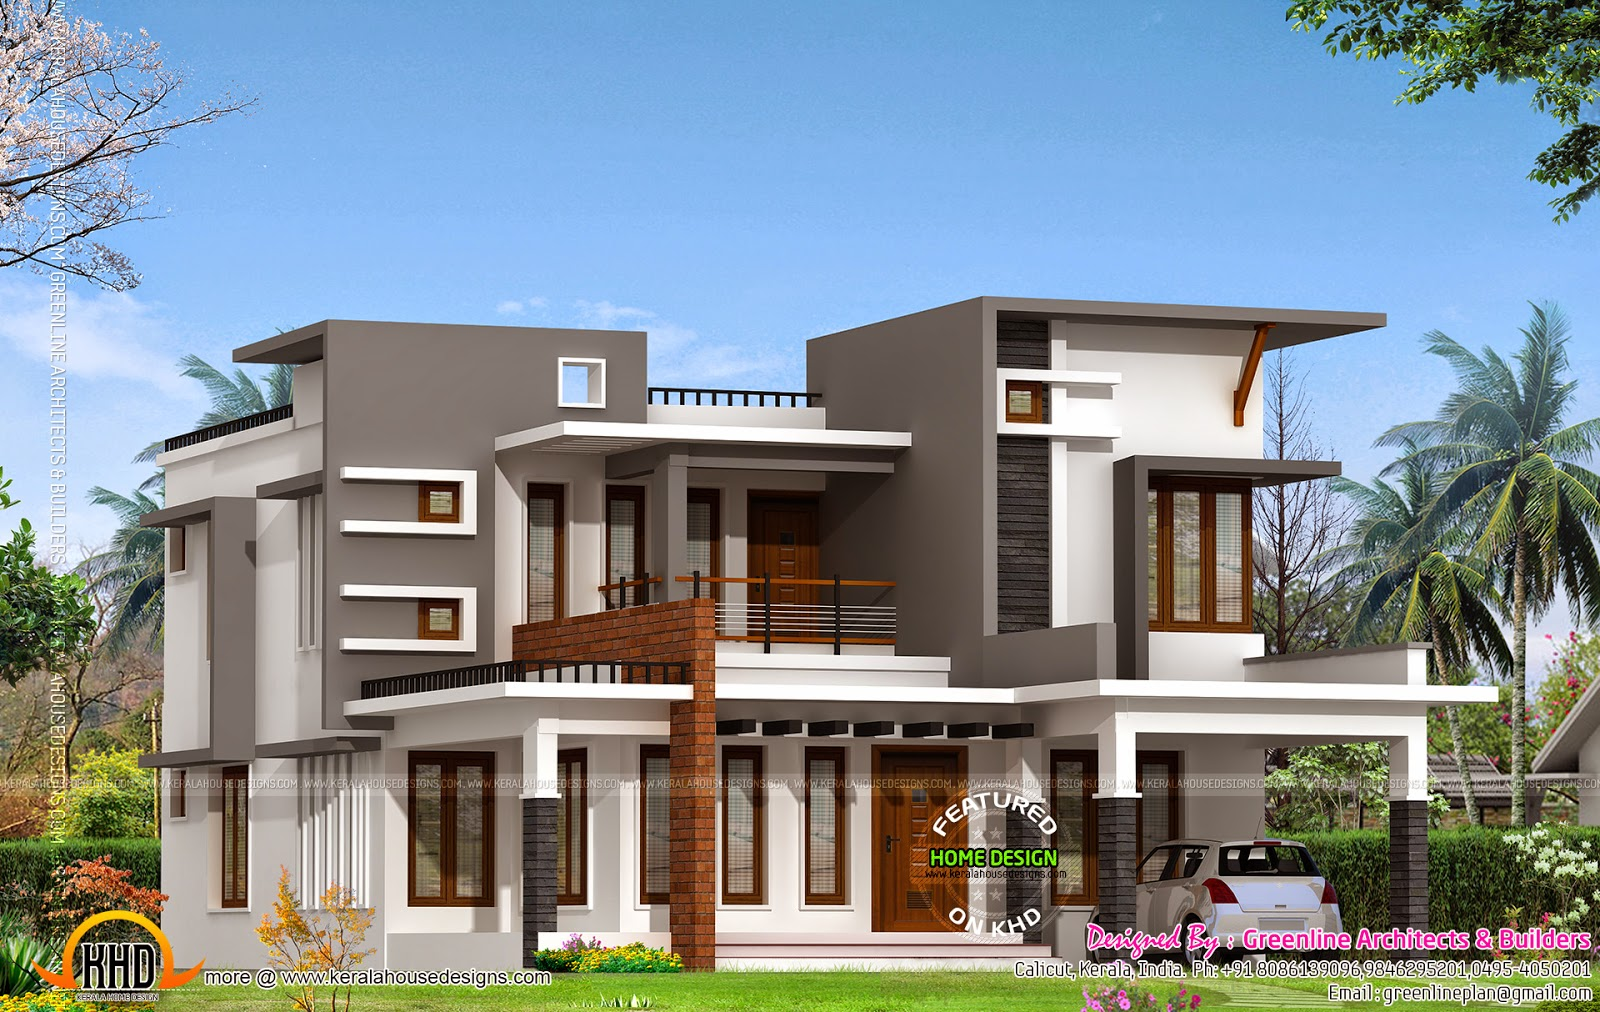 Contemporary house with estimate cost 28 lakhs kerala for Kerala style house plans with cost